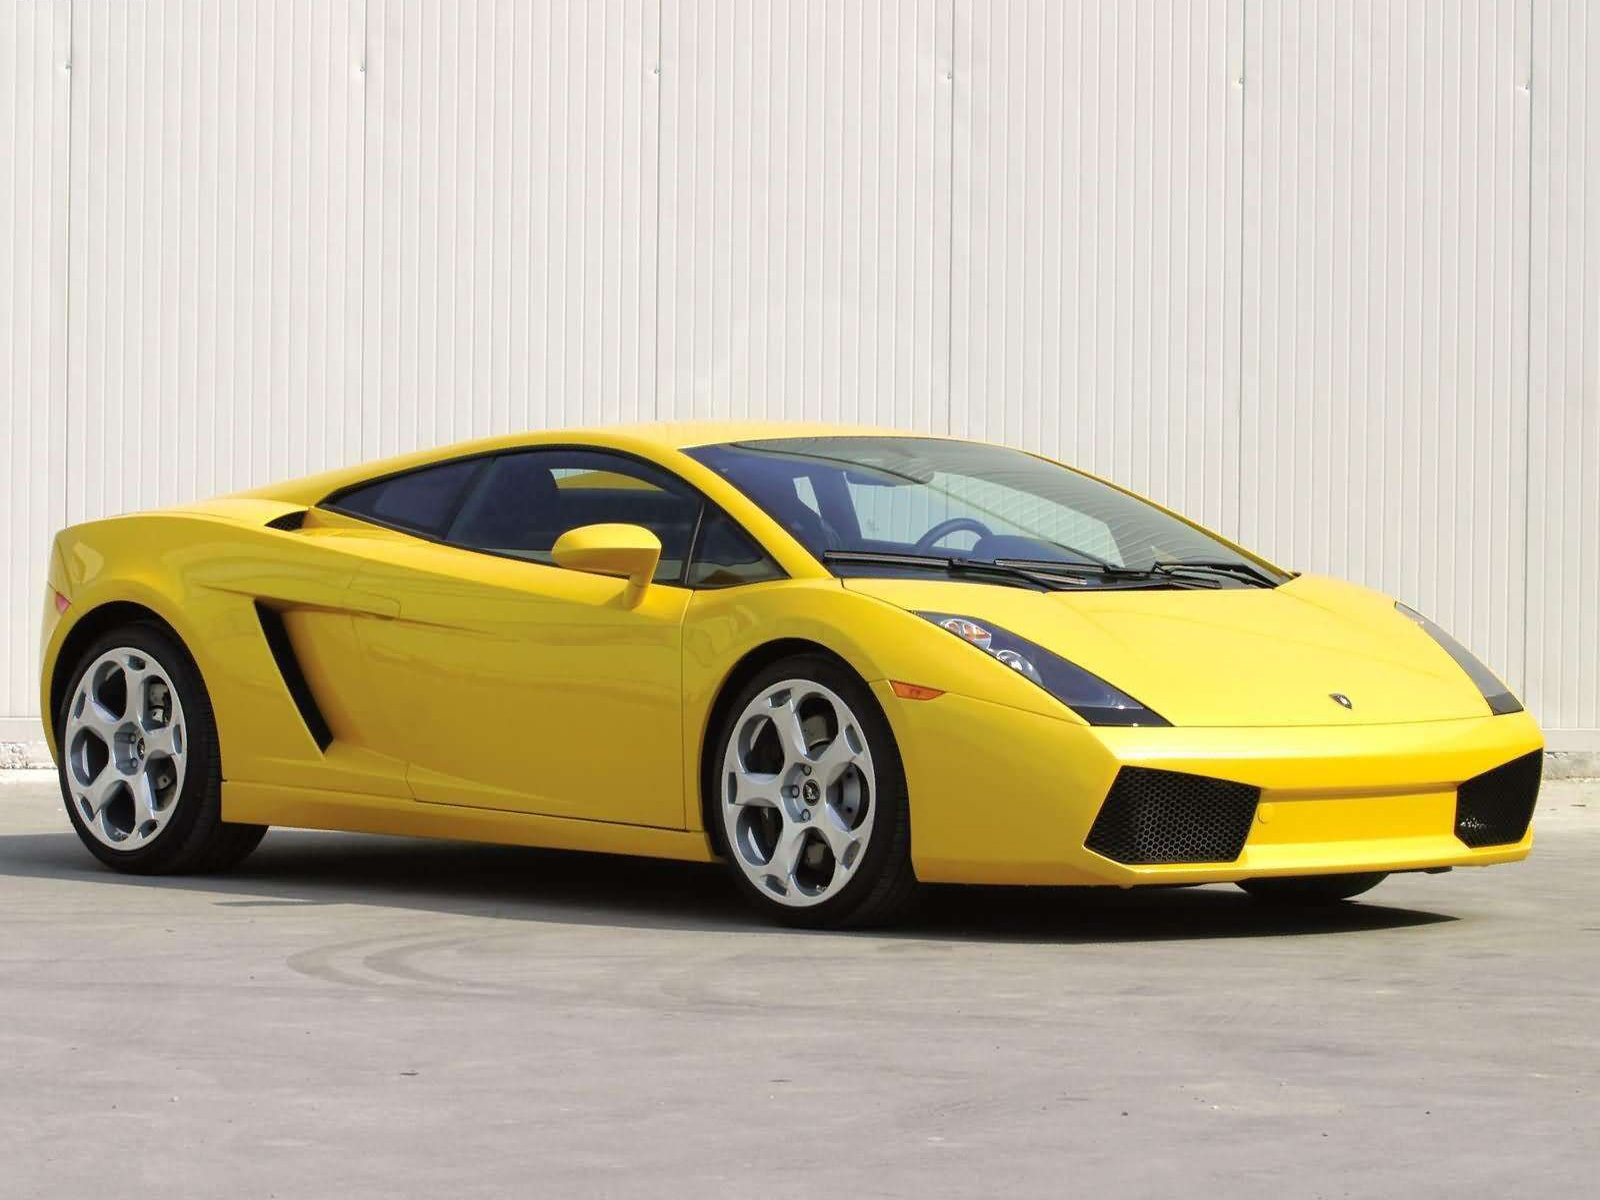 2003 Lamborghini Gallardo Wallpapers Widescreen